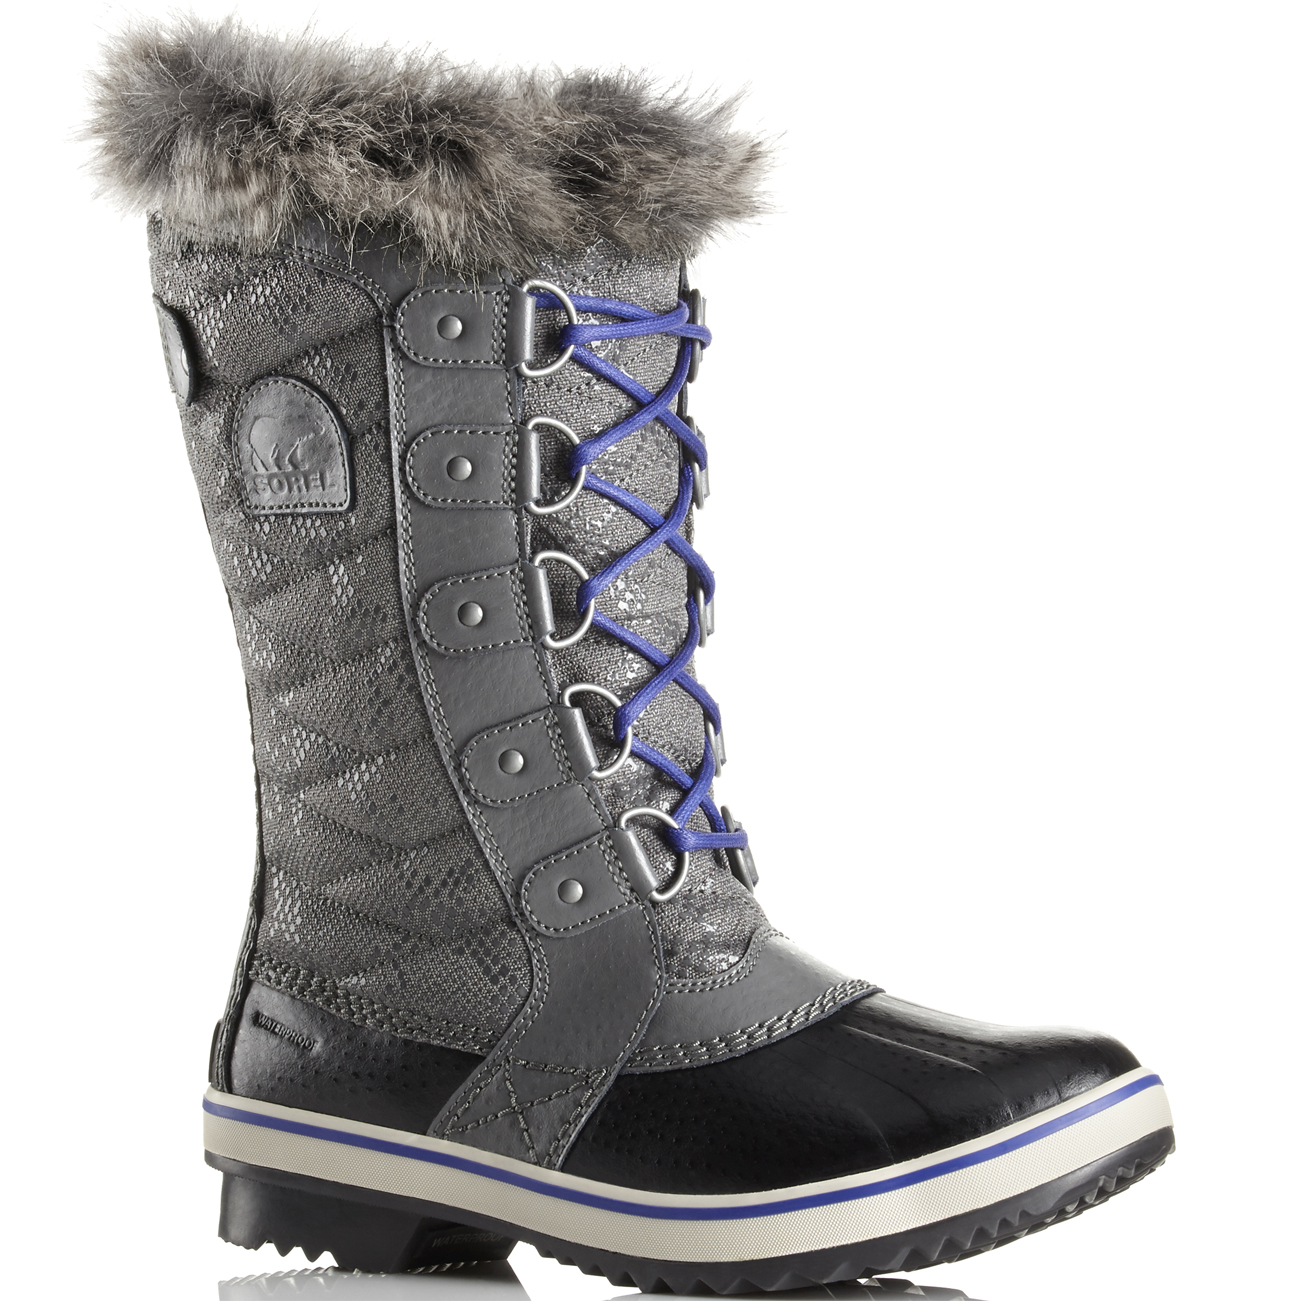 Ladies Sorel Tofino II Fur Winter Rain Snow Fur II Lined Lace Up Winter botas All Talla f40062